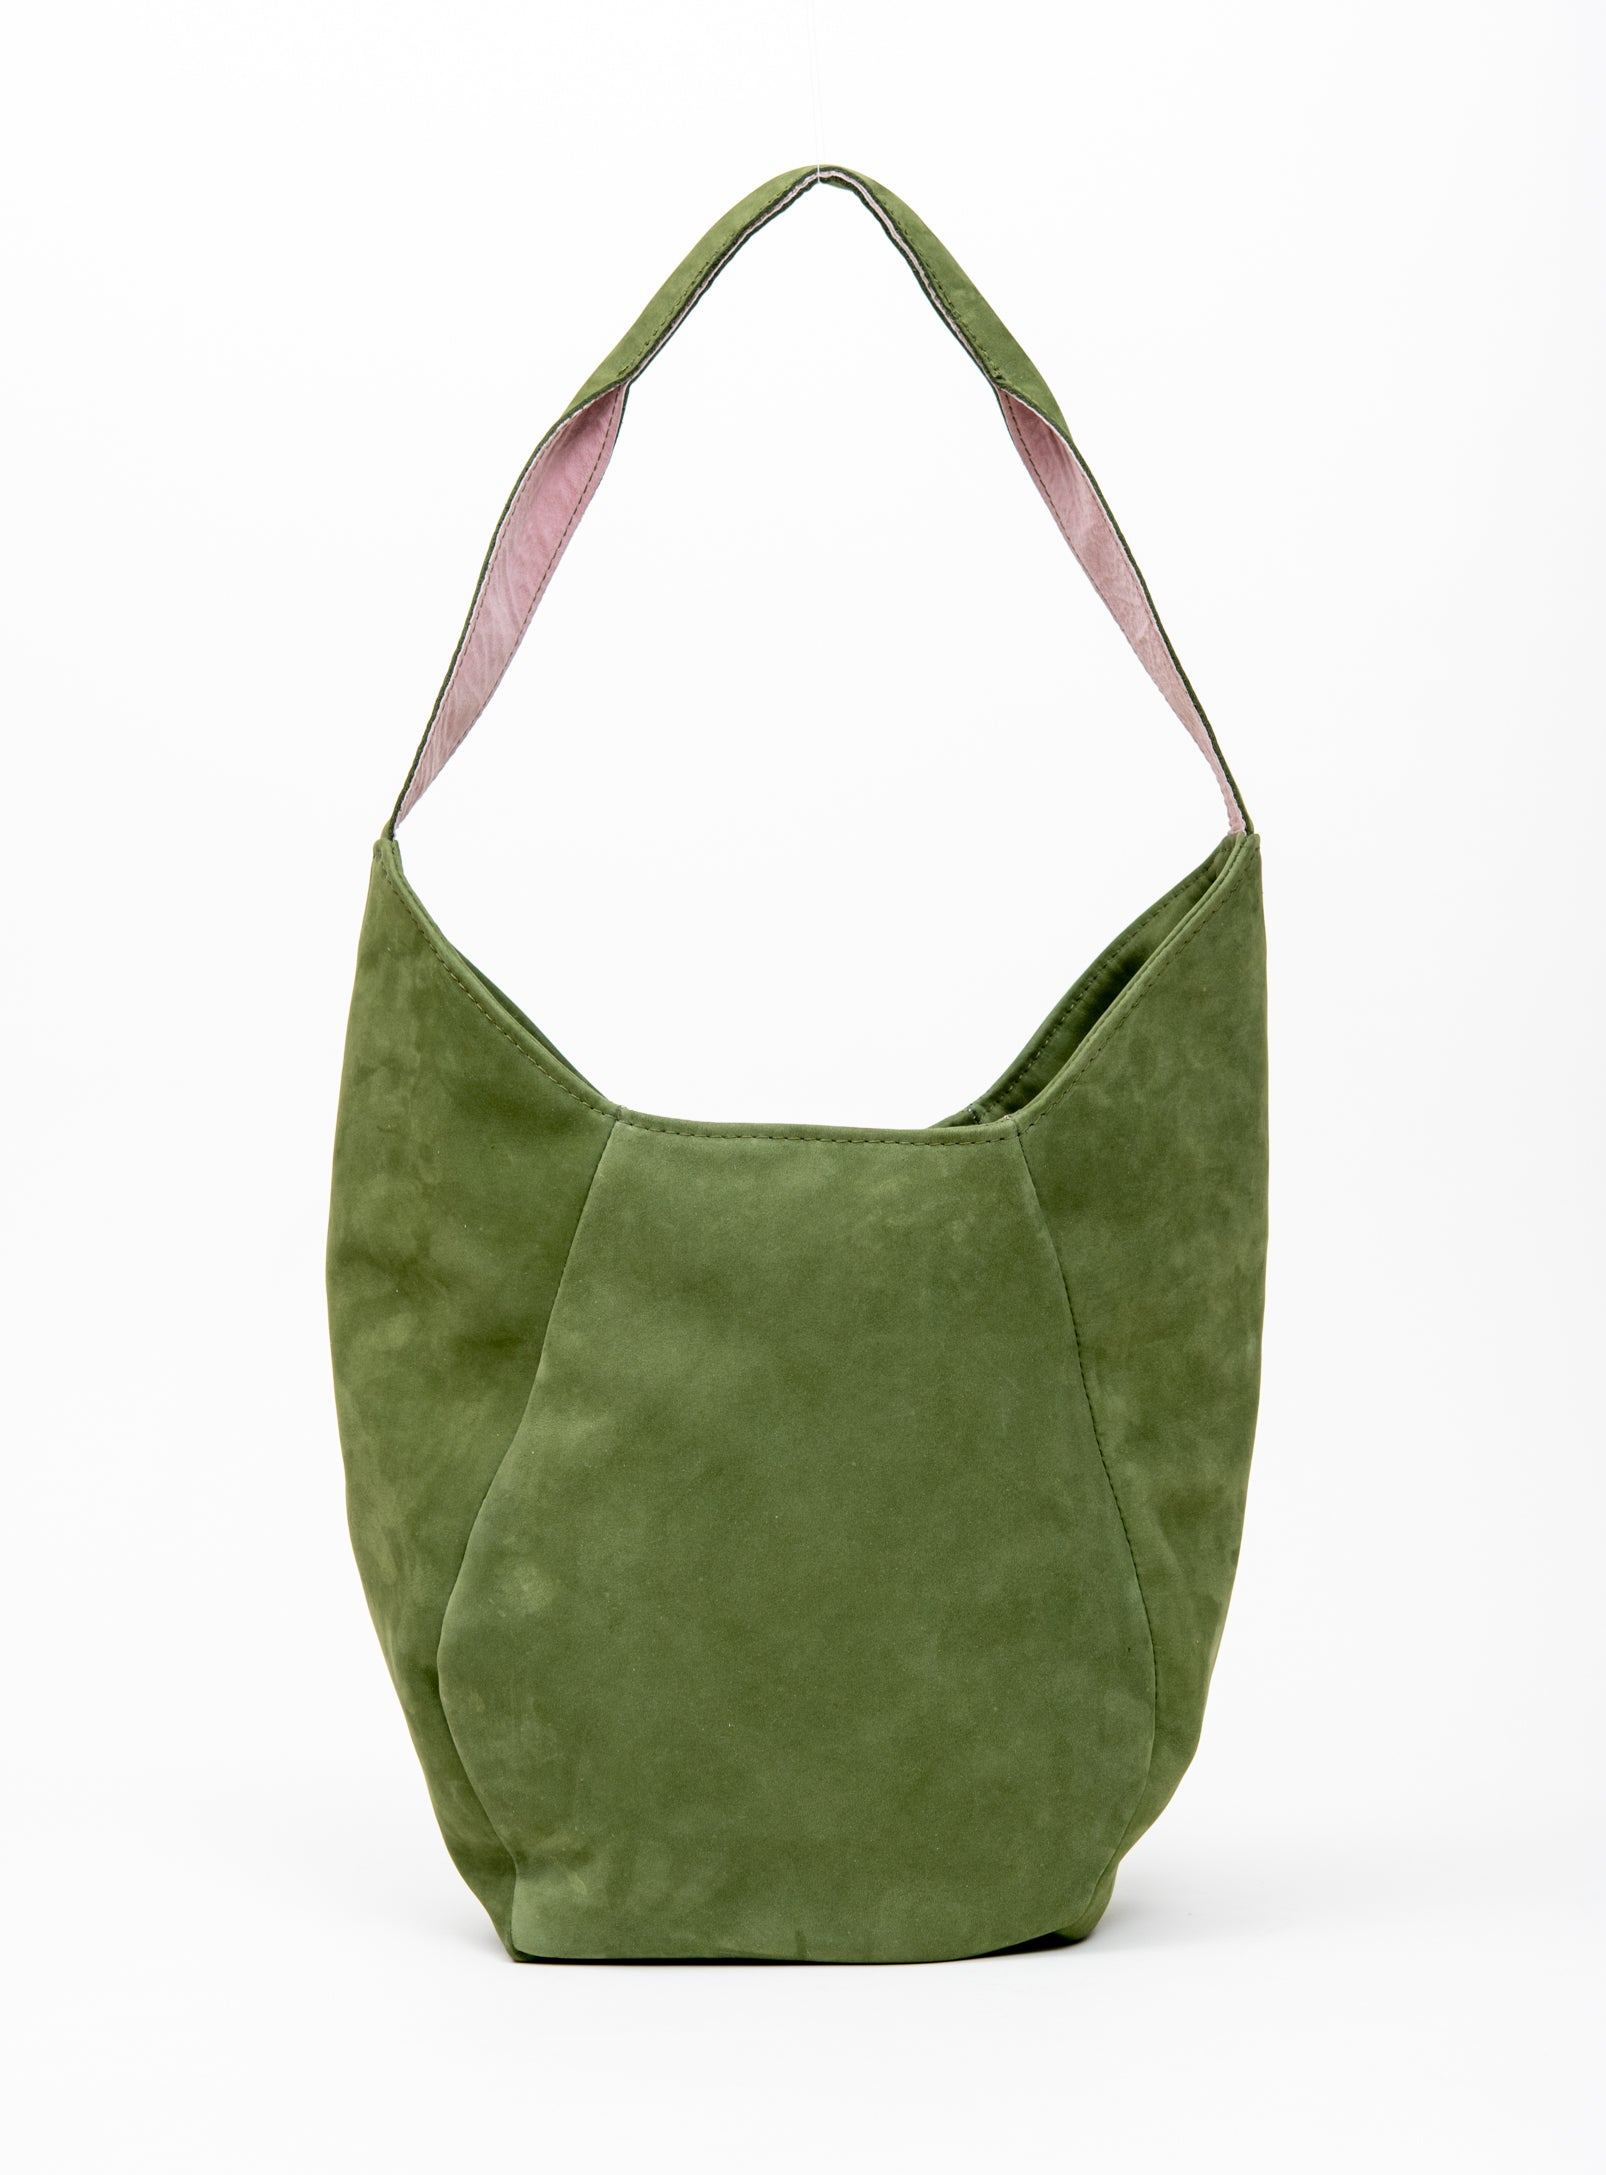 Geometrical leather tote bag MONT-ROYAL model